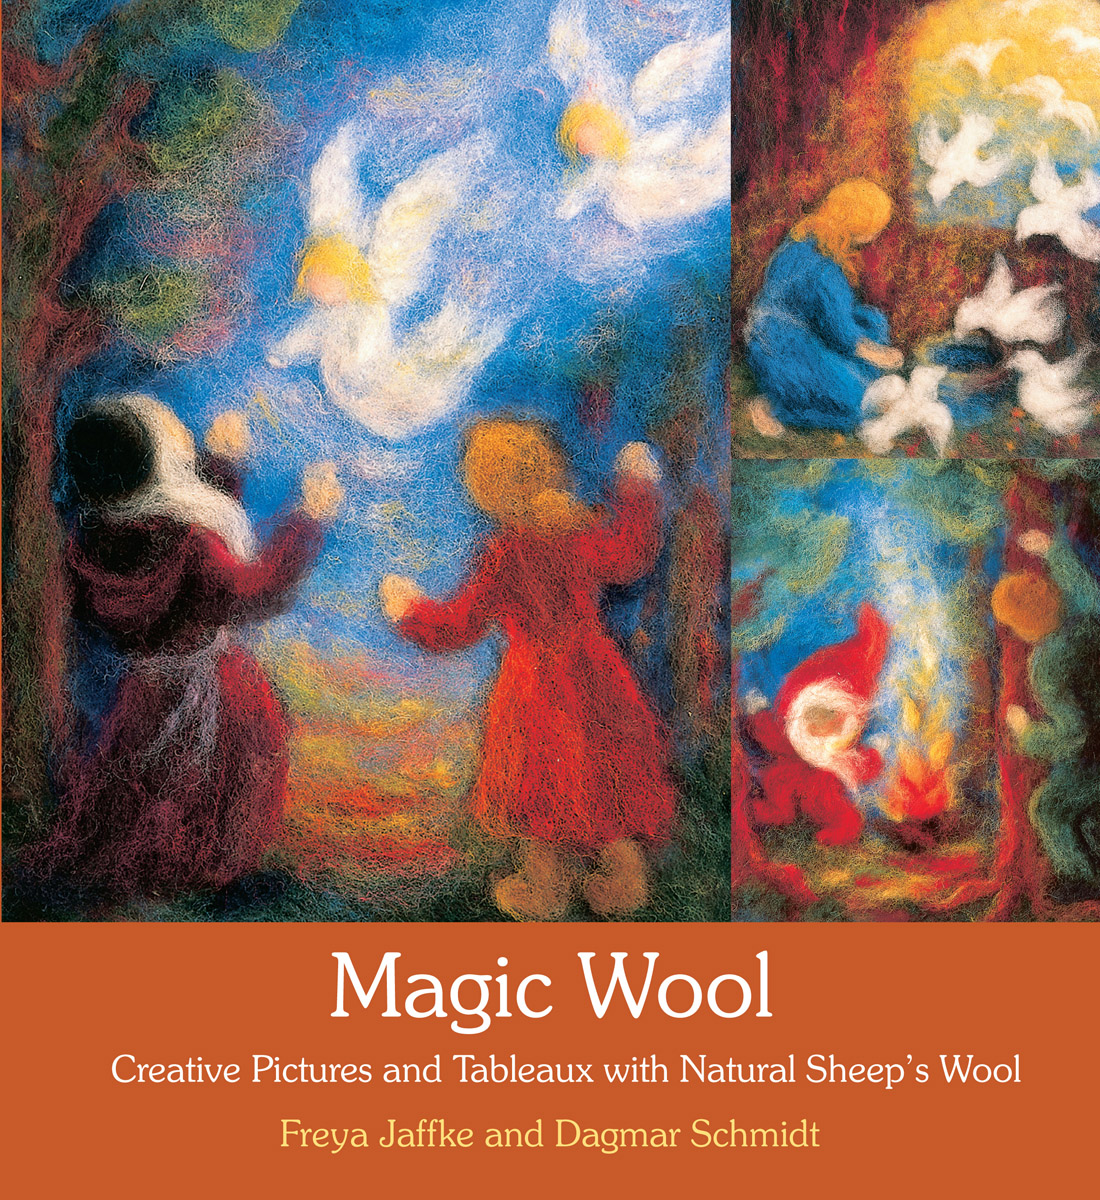 Magic Wool: Creative Pictures and Tableaux with Natural Sheep's Wool Dagmar Schmidt and Freya Jaffke